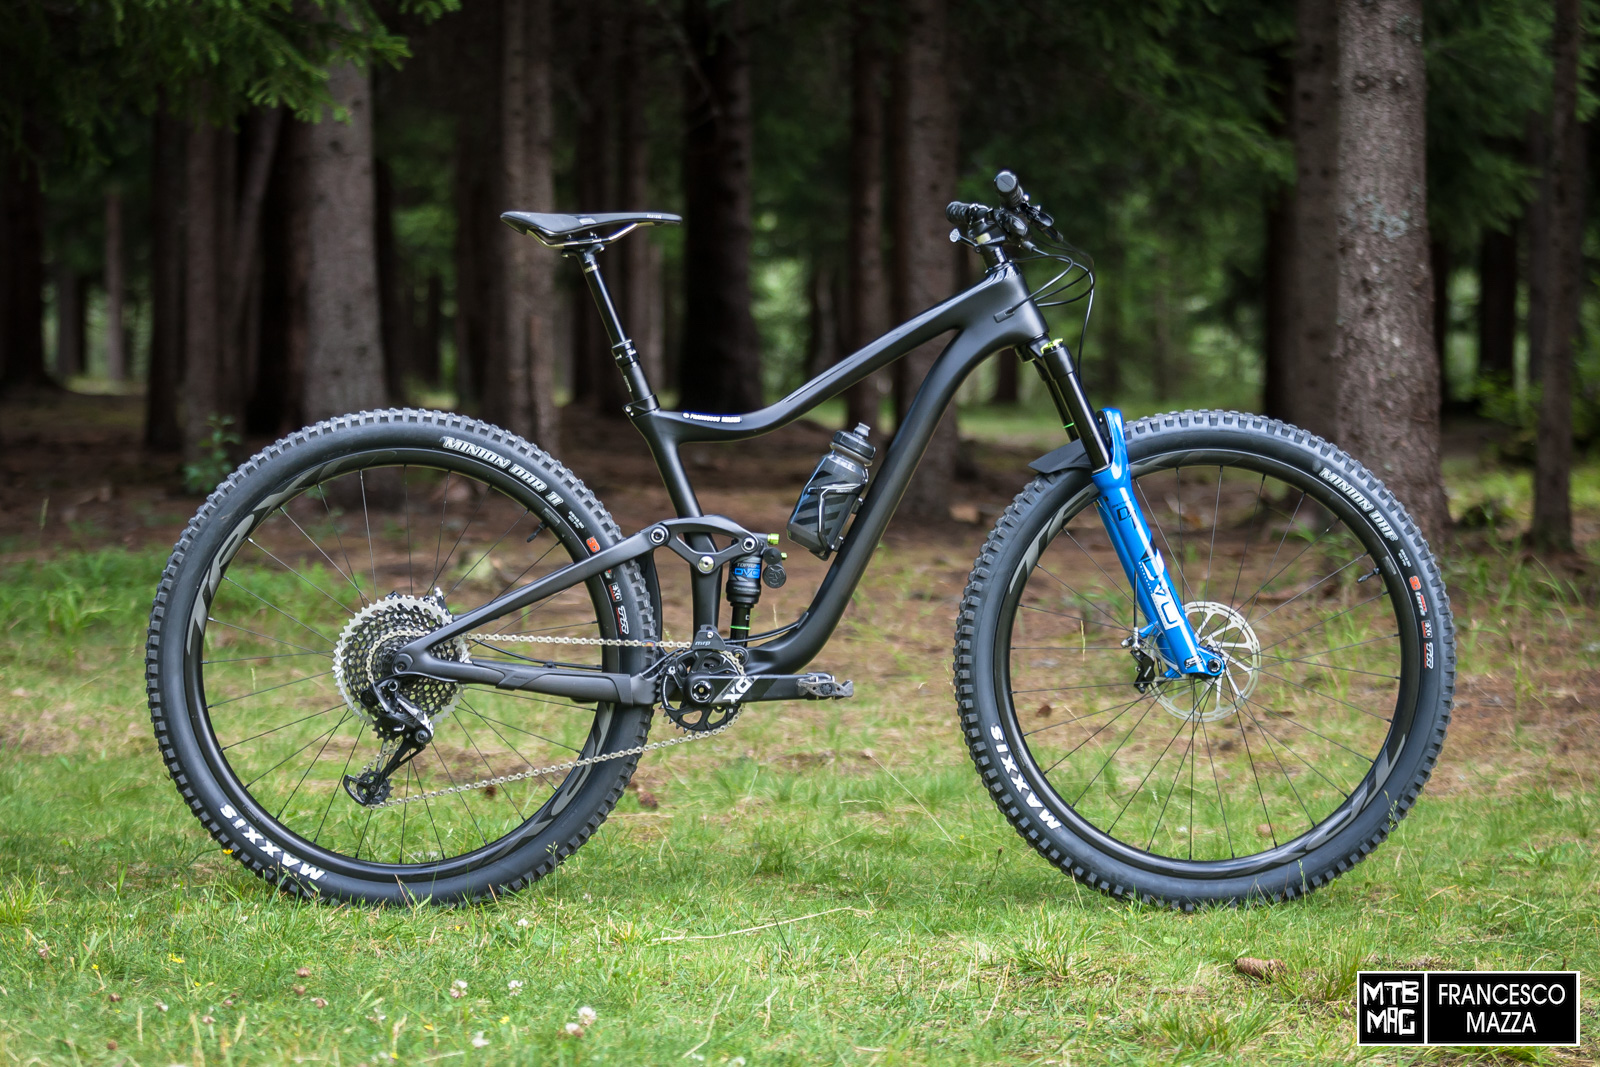 95a696d2881 MTB-MAG.COM - Mountain Bike Magazine | [First Ride] The New Giant ...